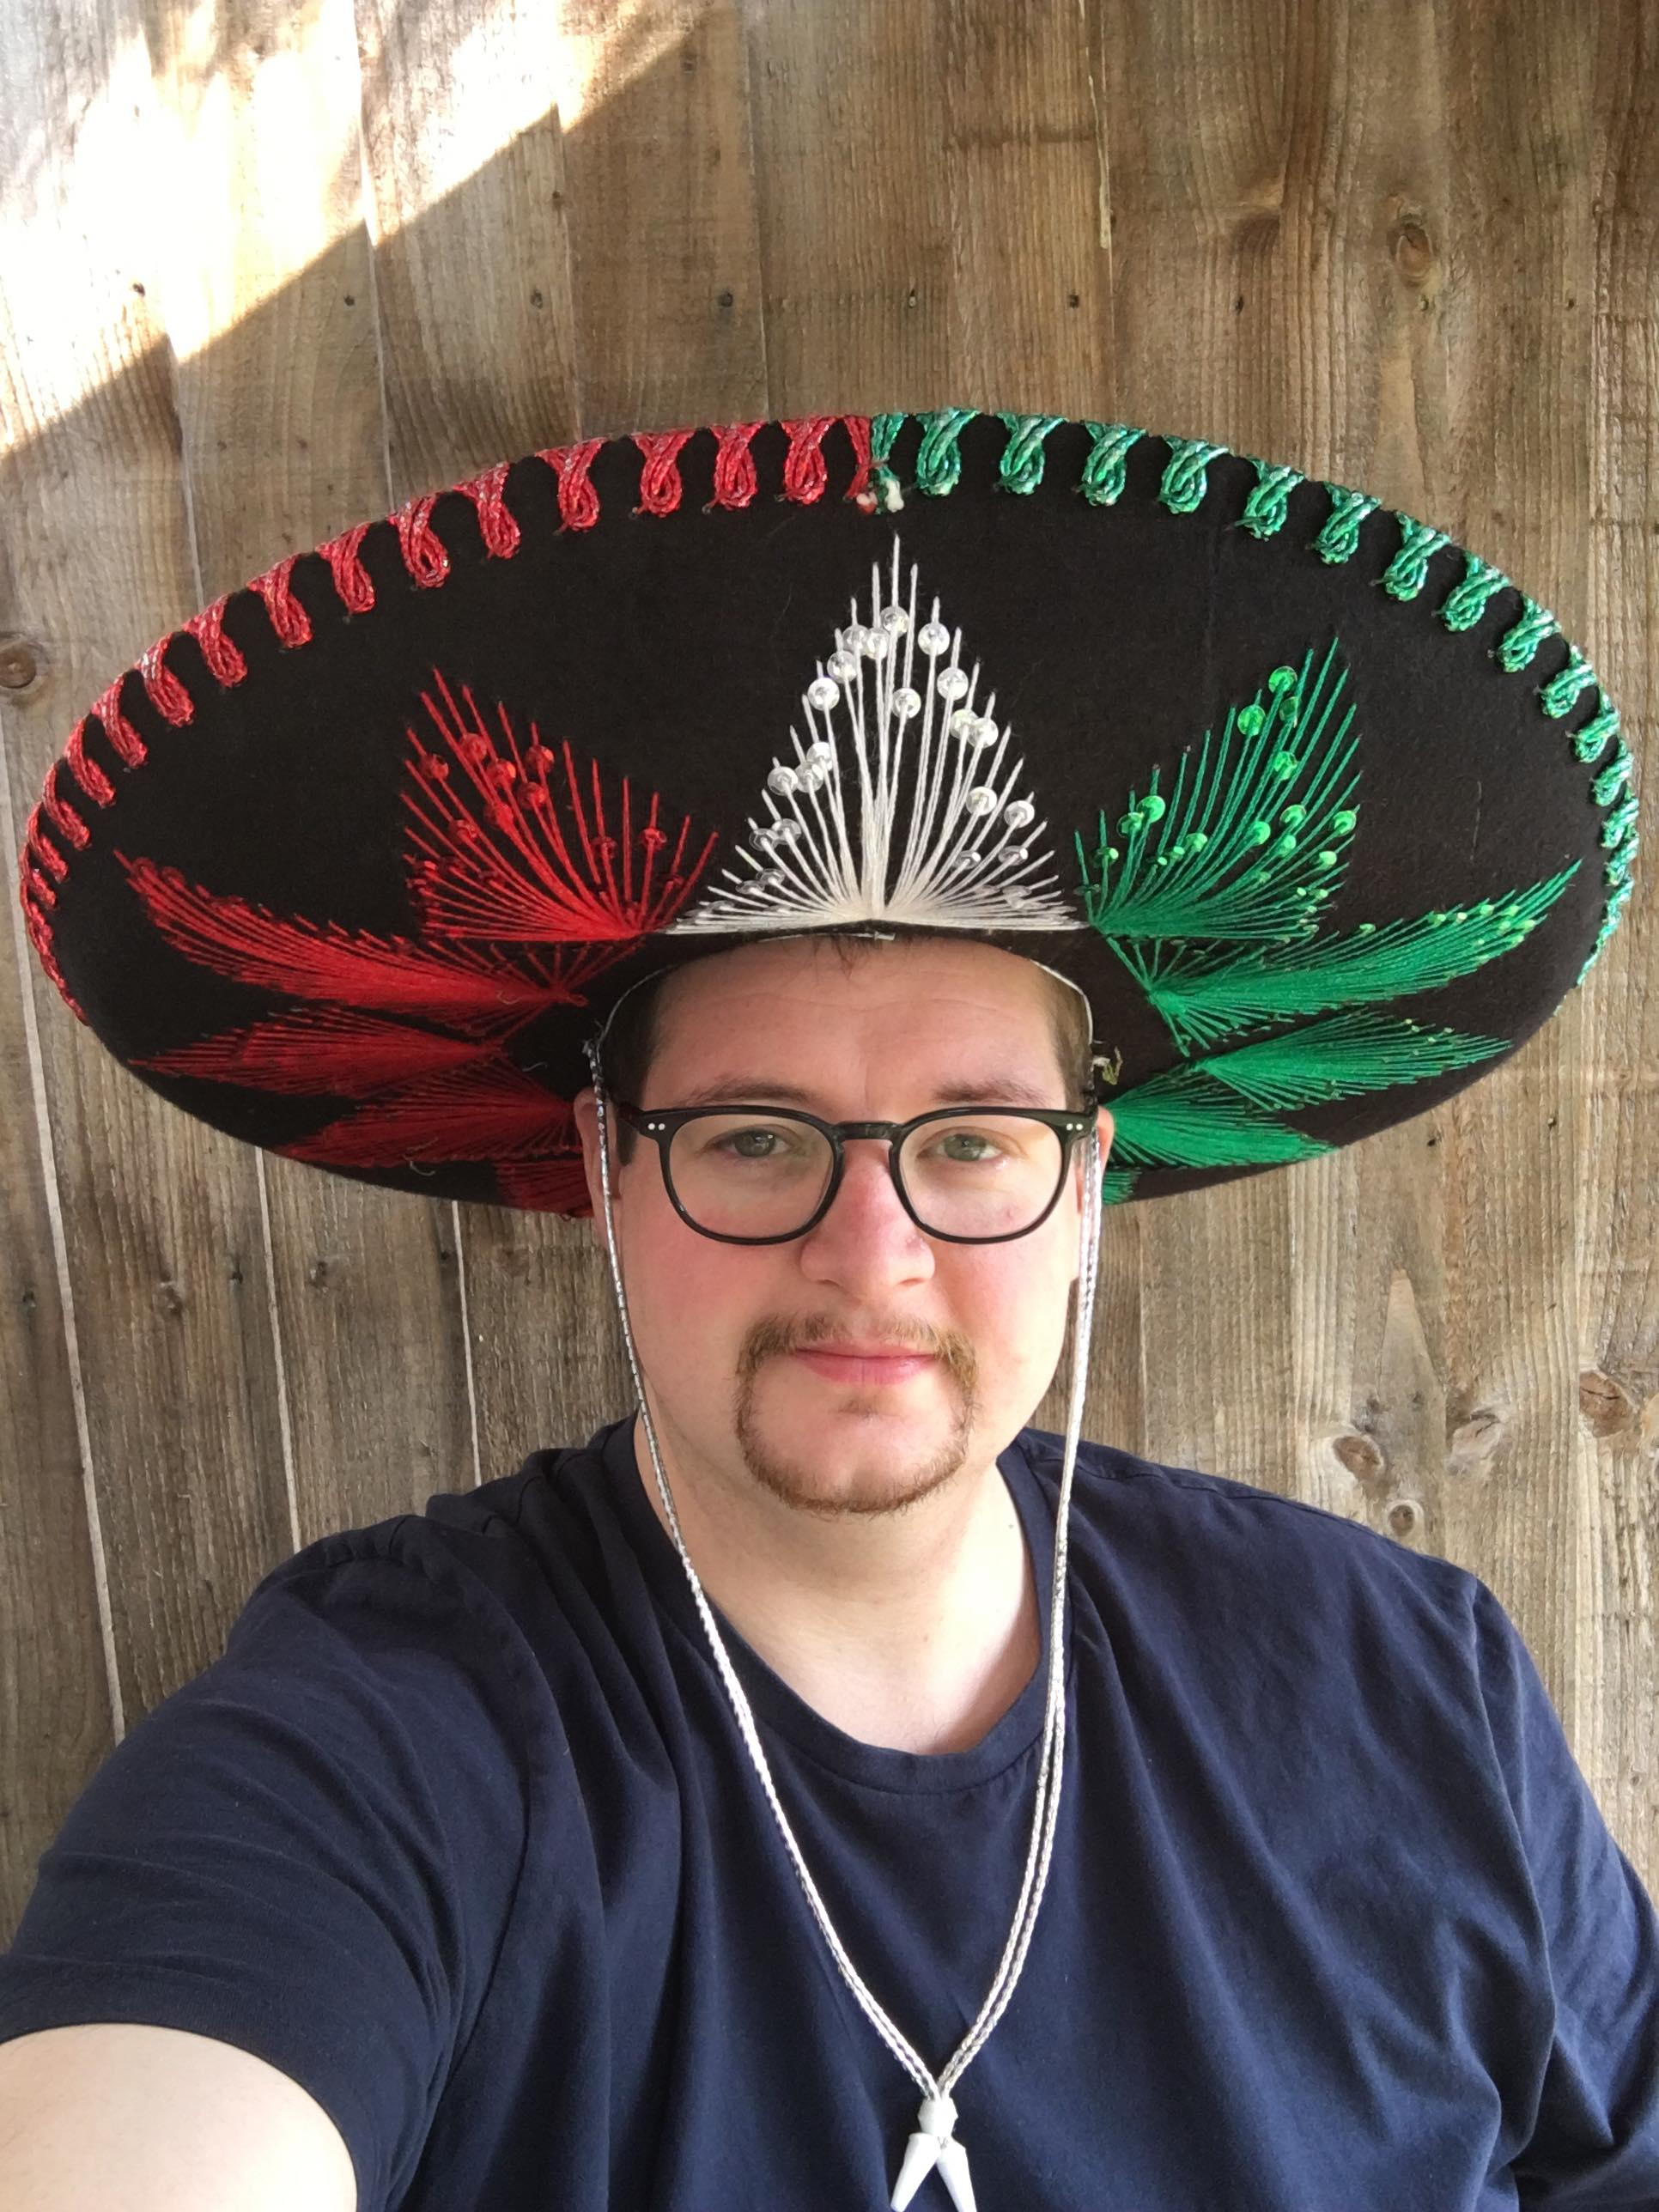 John Junior wearing a sombrero